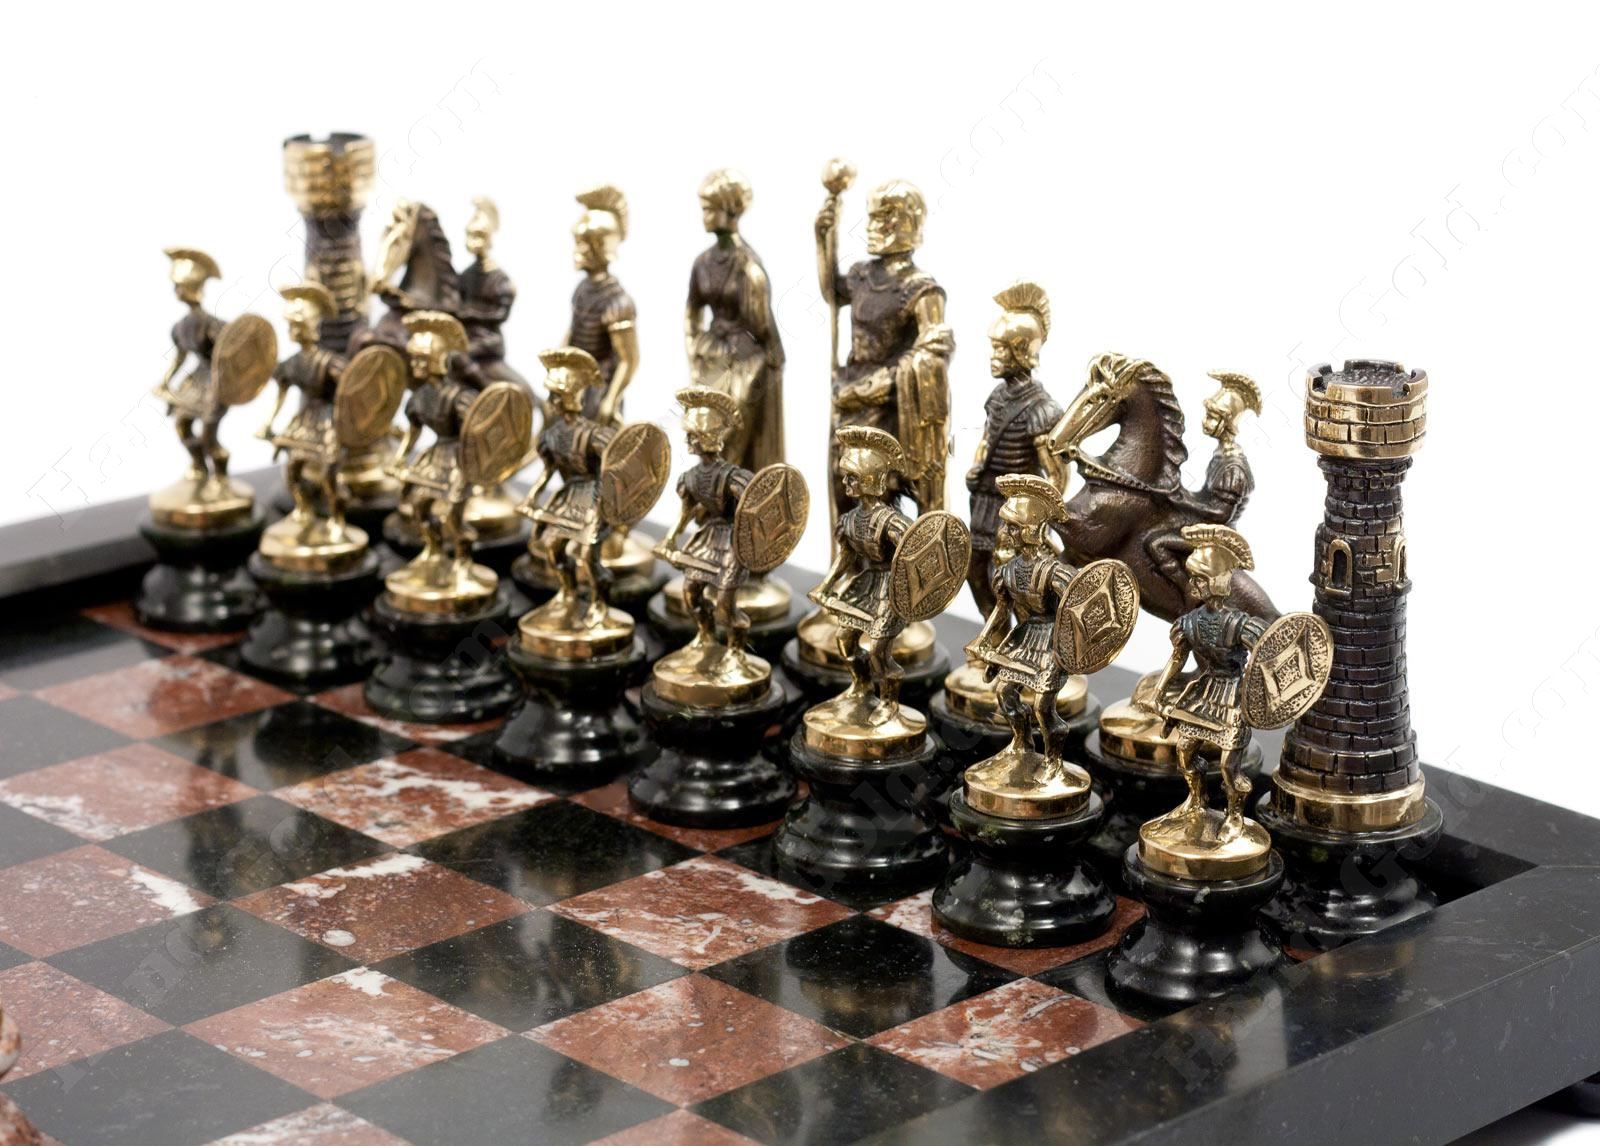 Find Chess Sets in Canada | Visit Kijiji Classifieds to buy, sell, or trade almost anything! New and used items, cars, real estate, jobs, services, vacation rentals and more virtually anywhere in Ontario.